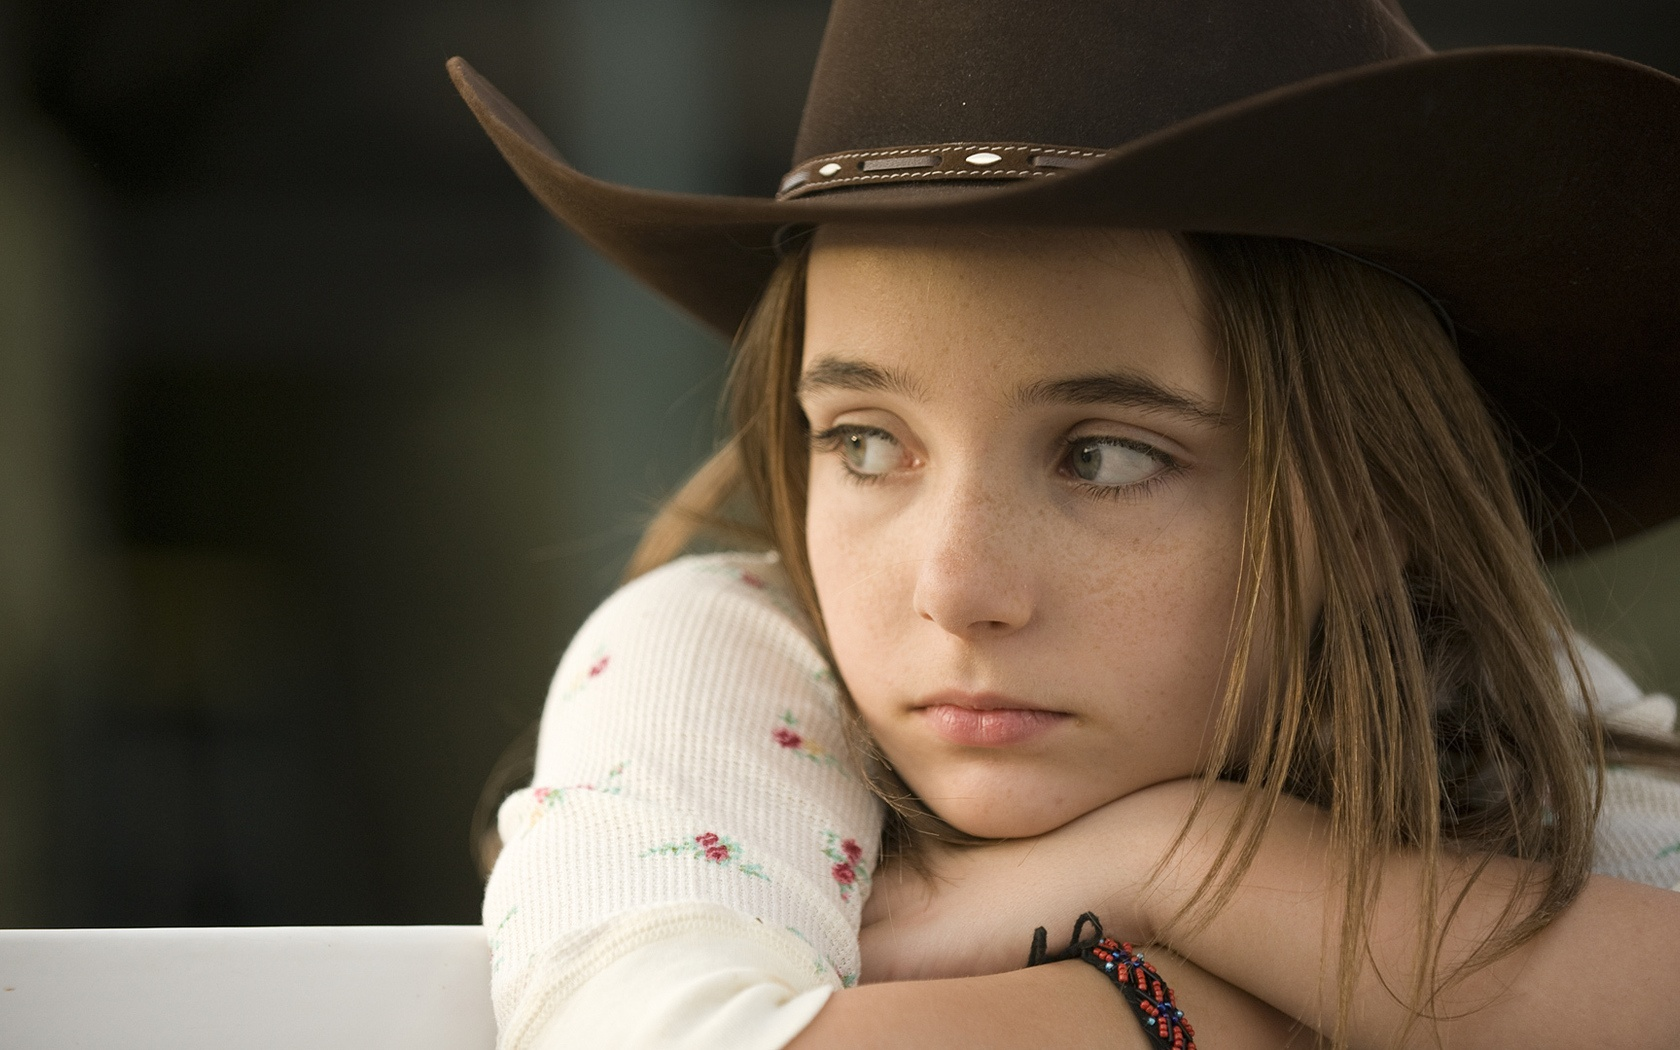 Wallpaper Sad Little Girl 1680X1050 Hd Picture, Image-2098